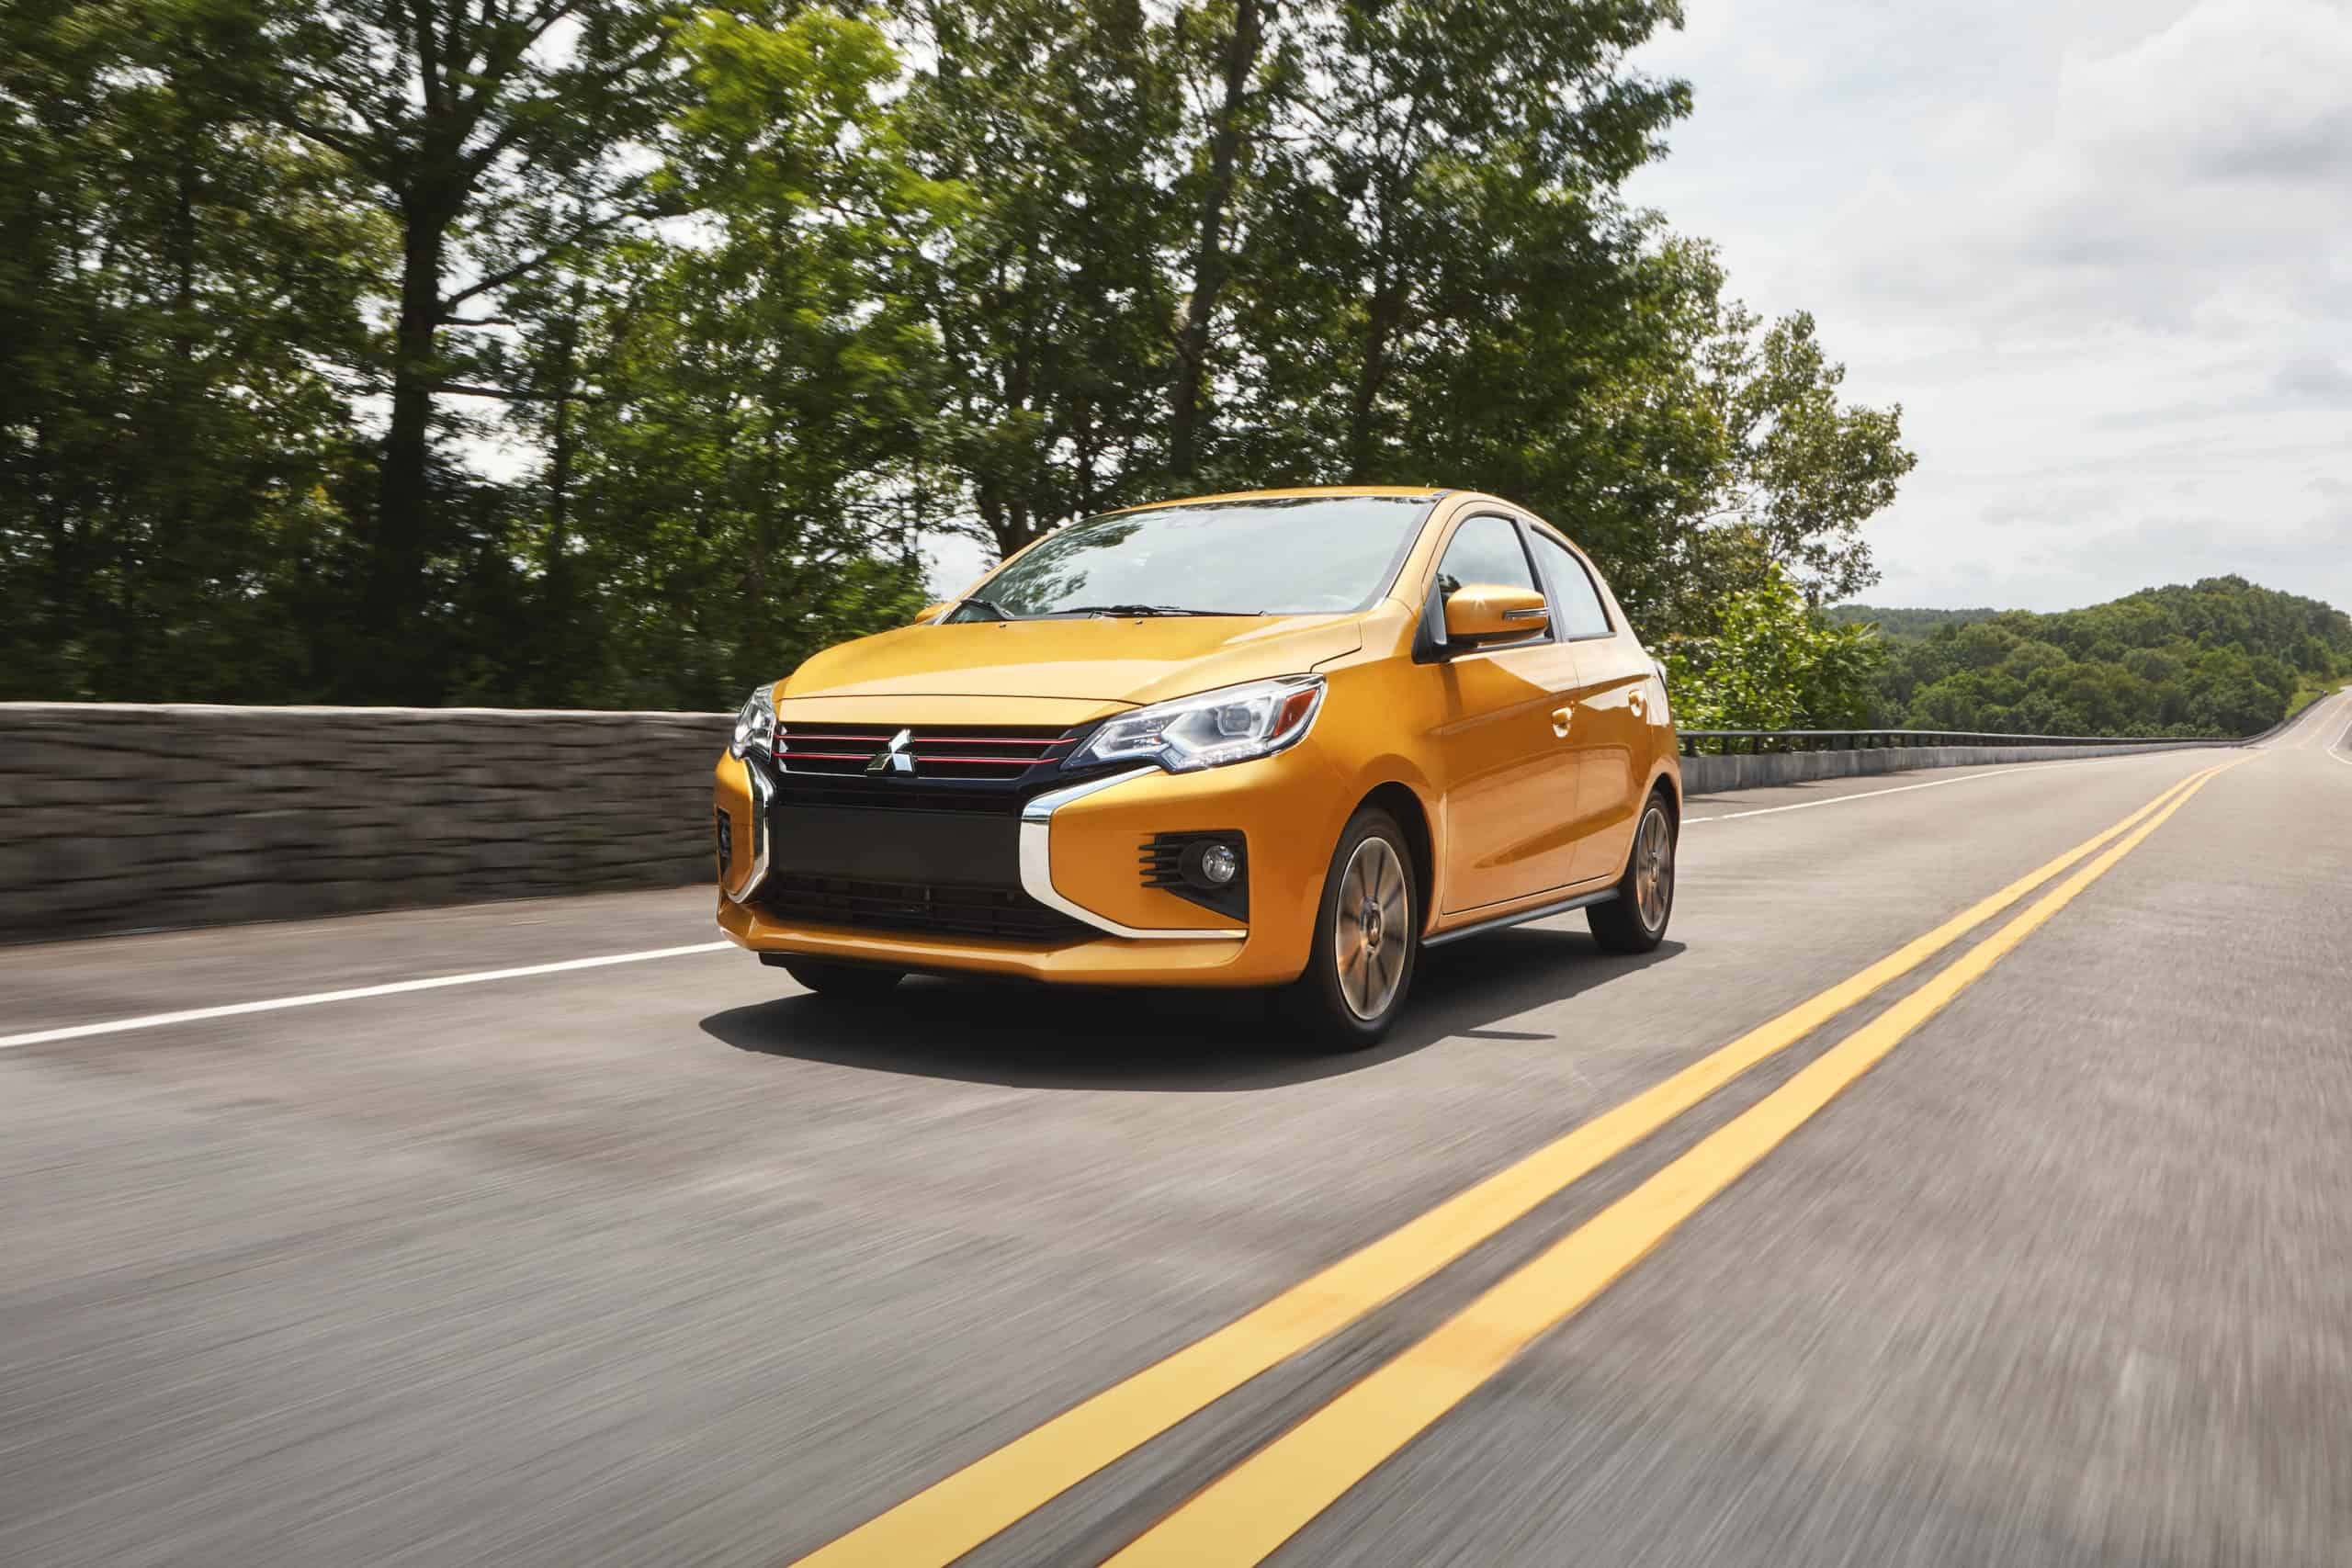 check out the most anticipated 2021 mitsubishi models